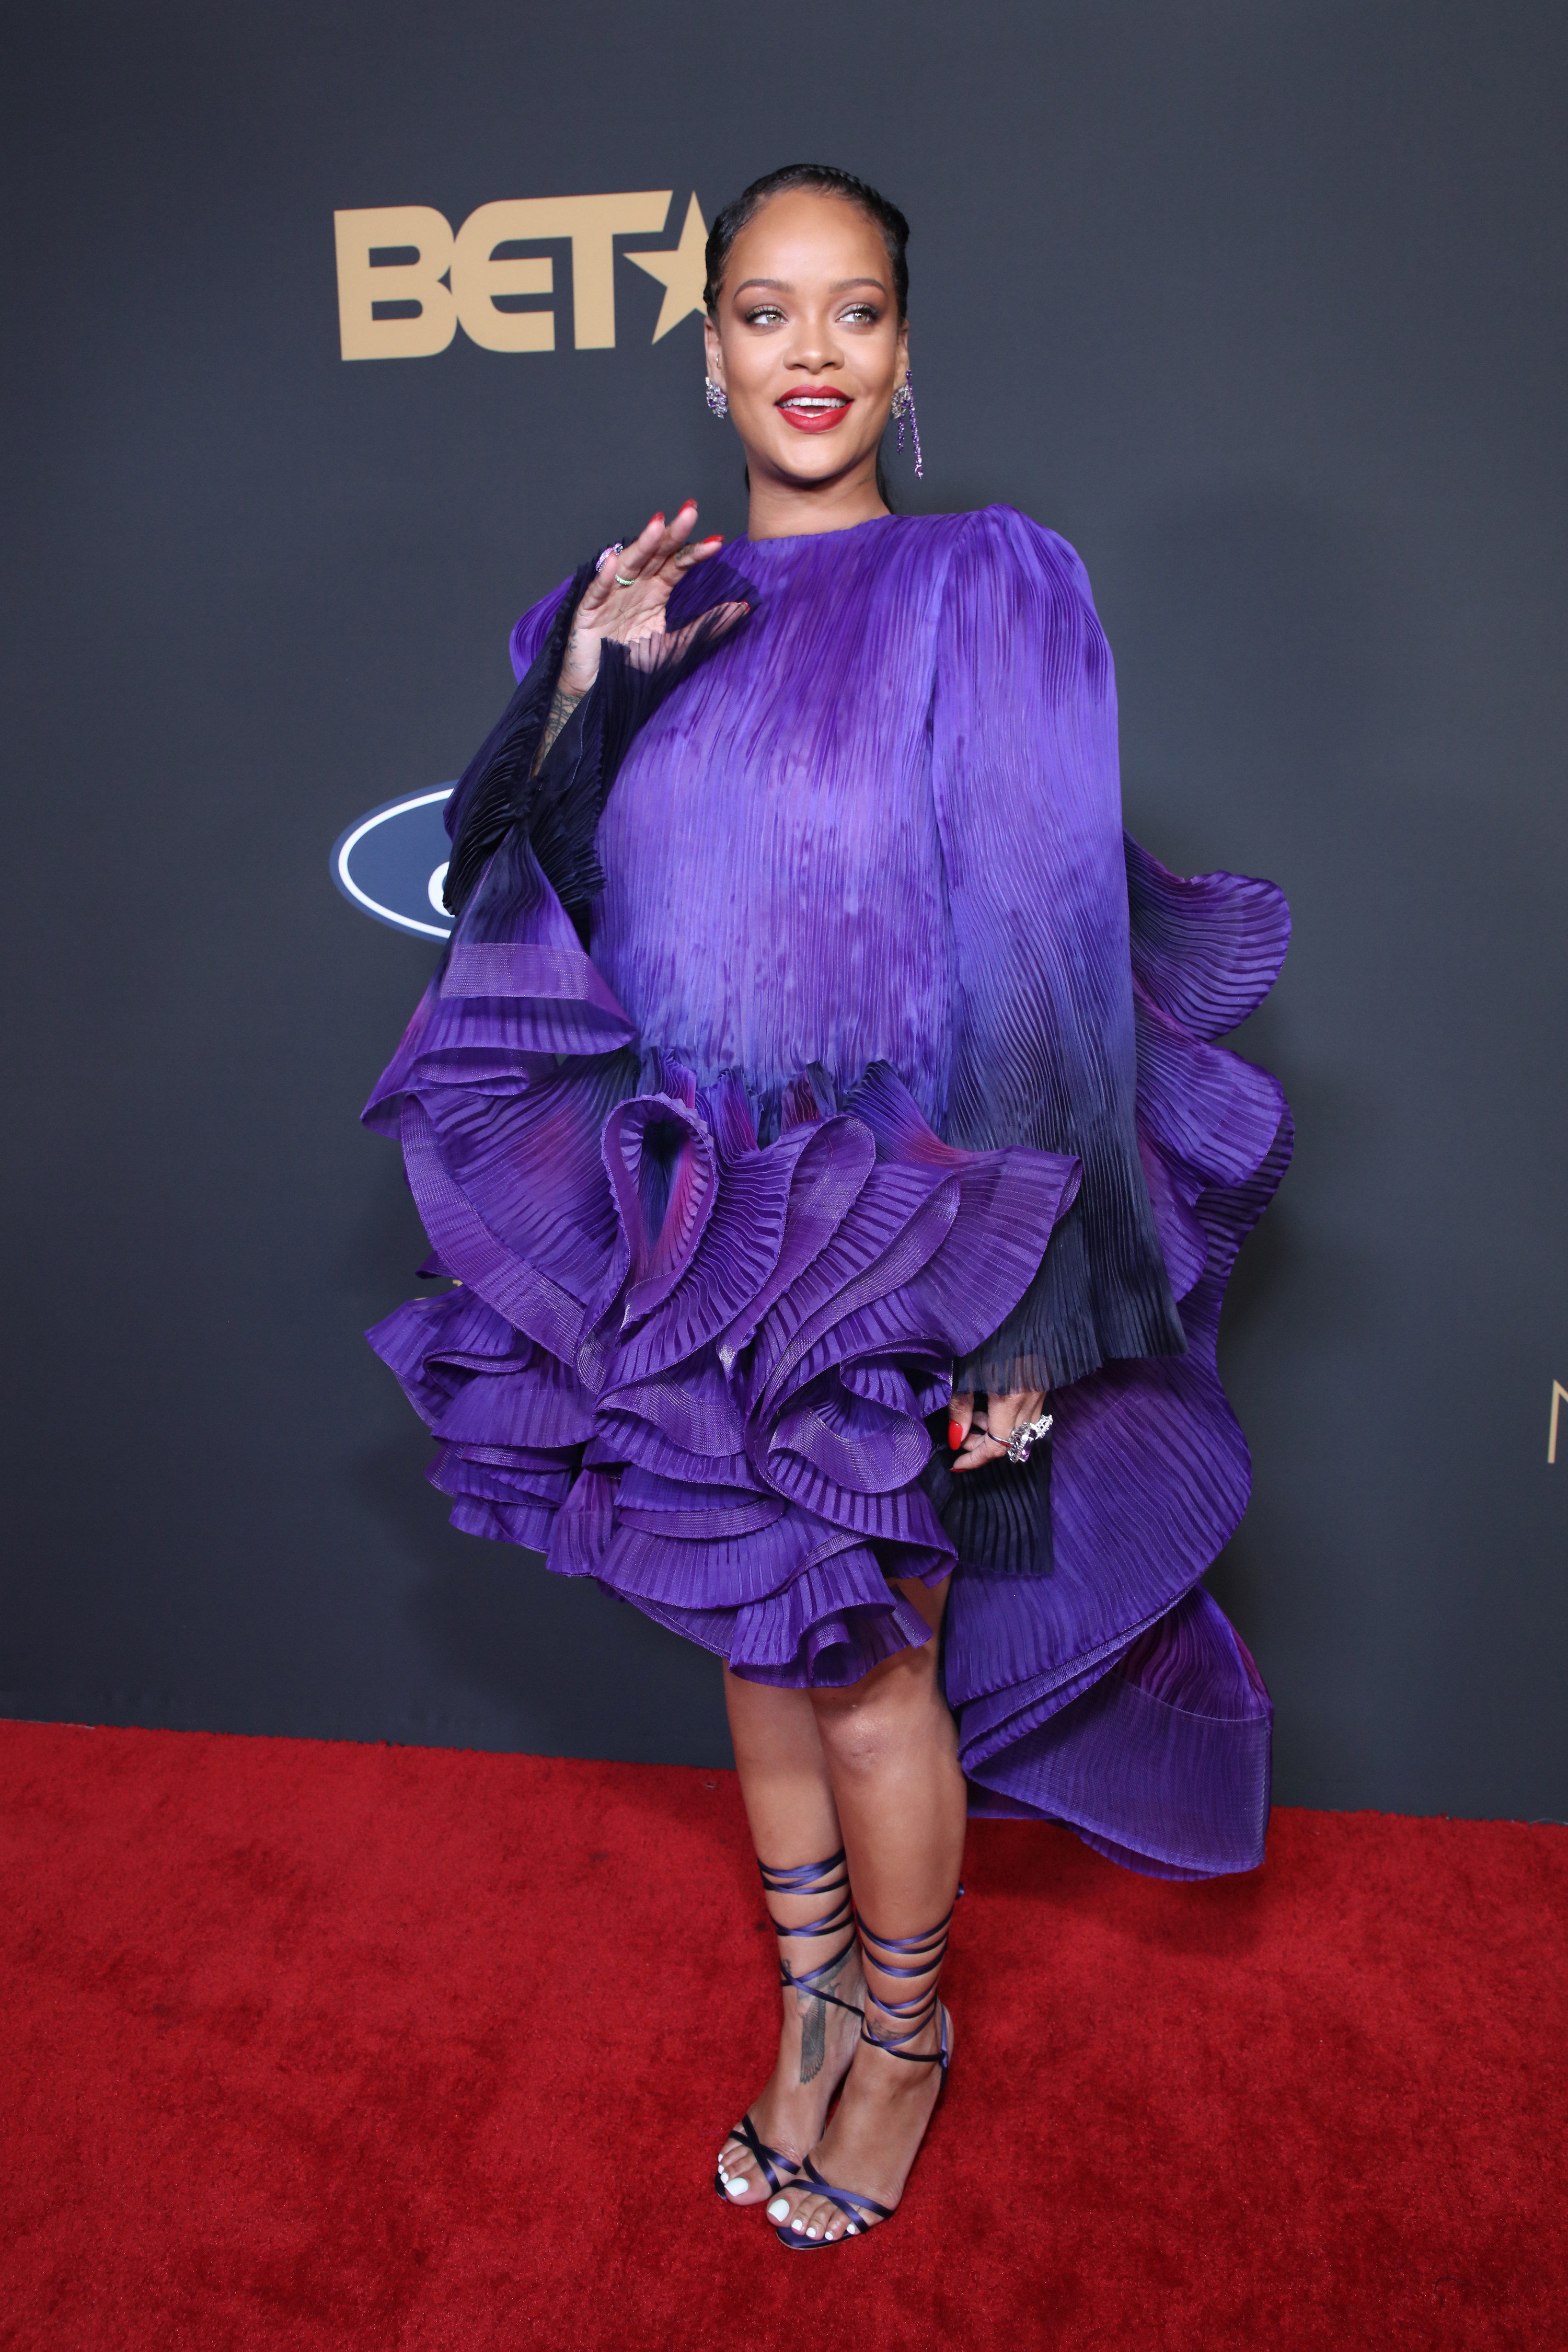 Rihanna is photographed on the red carpet at the NAACP Image Awards in 2020